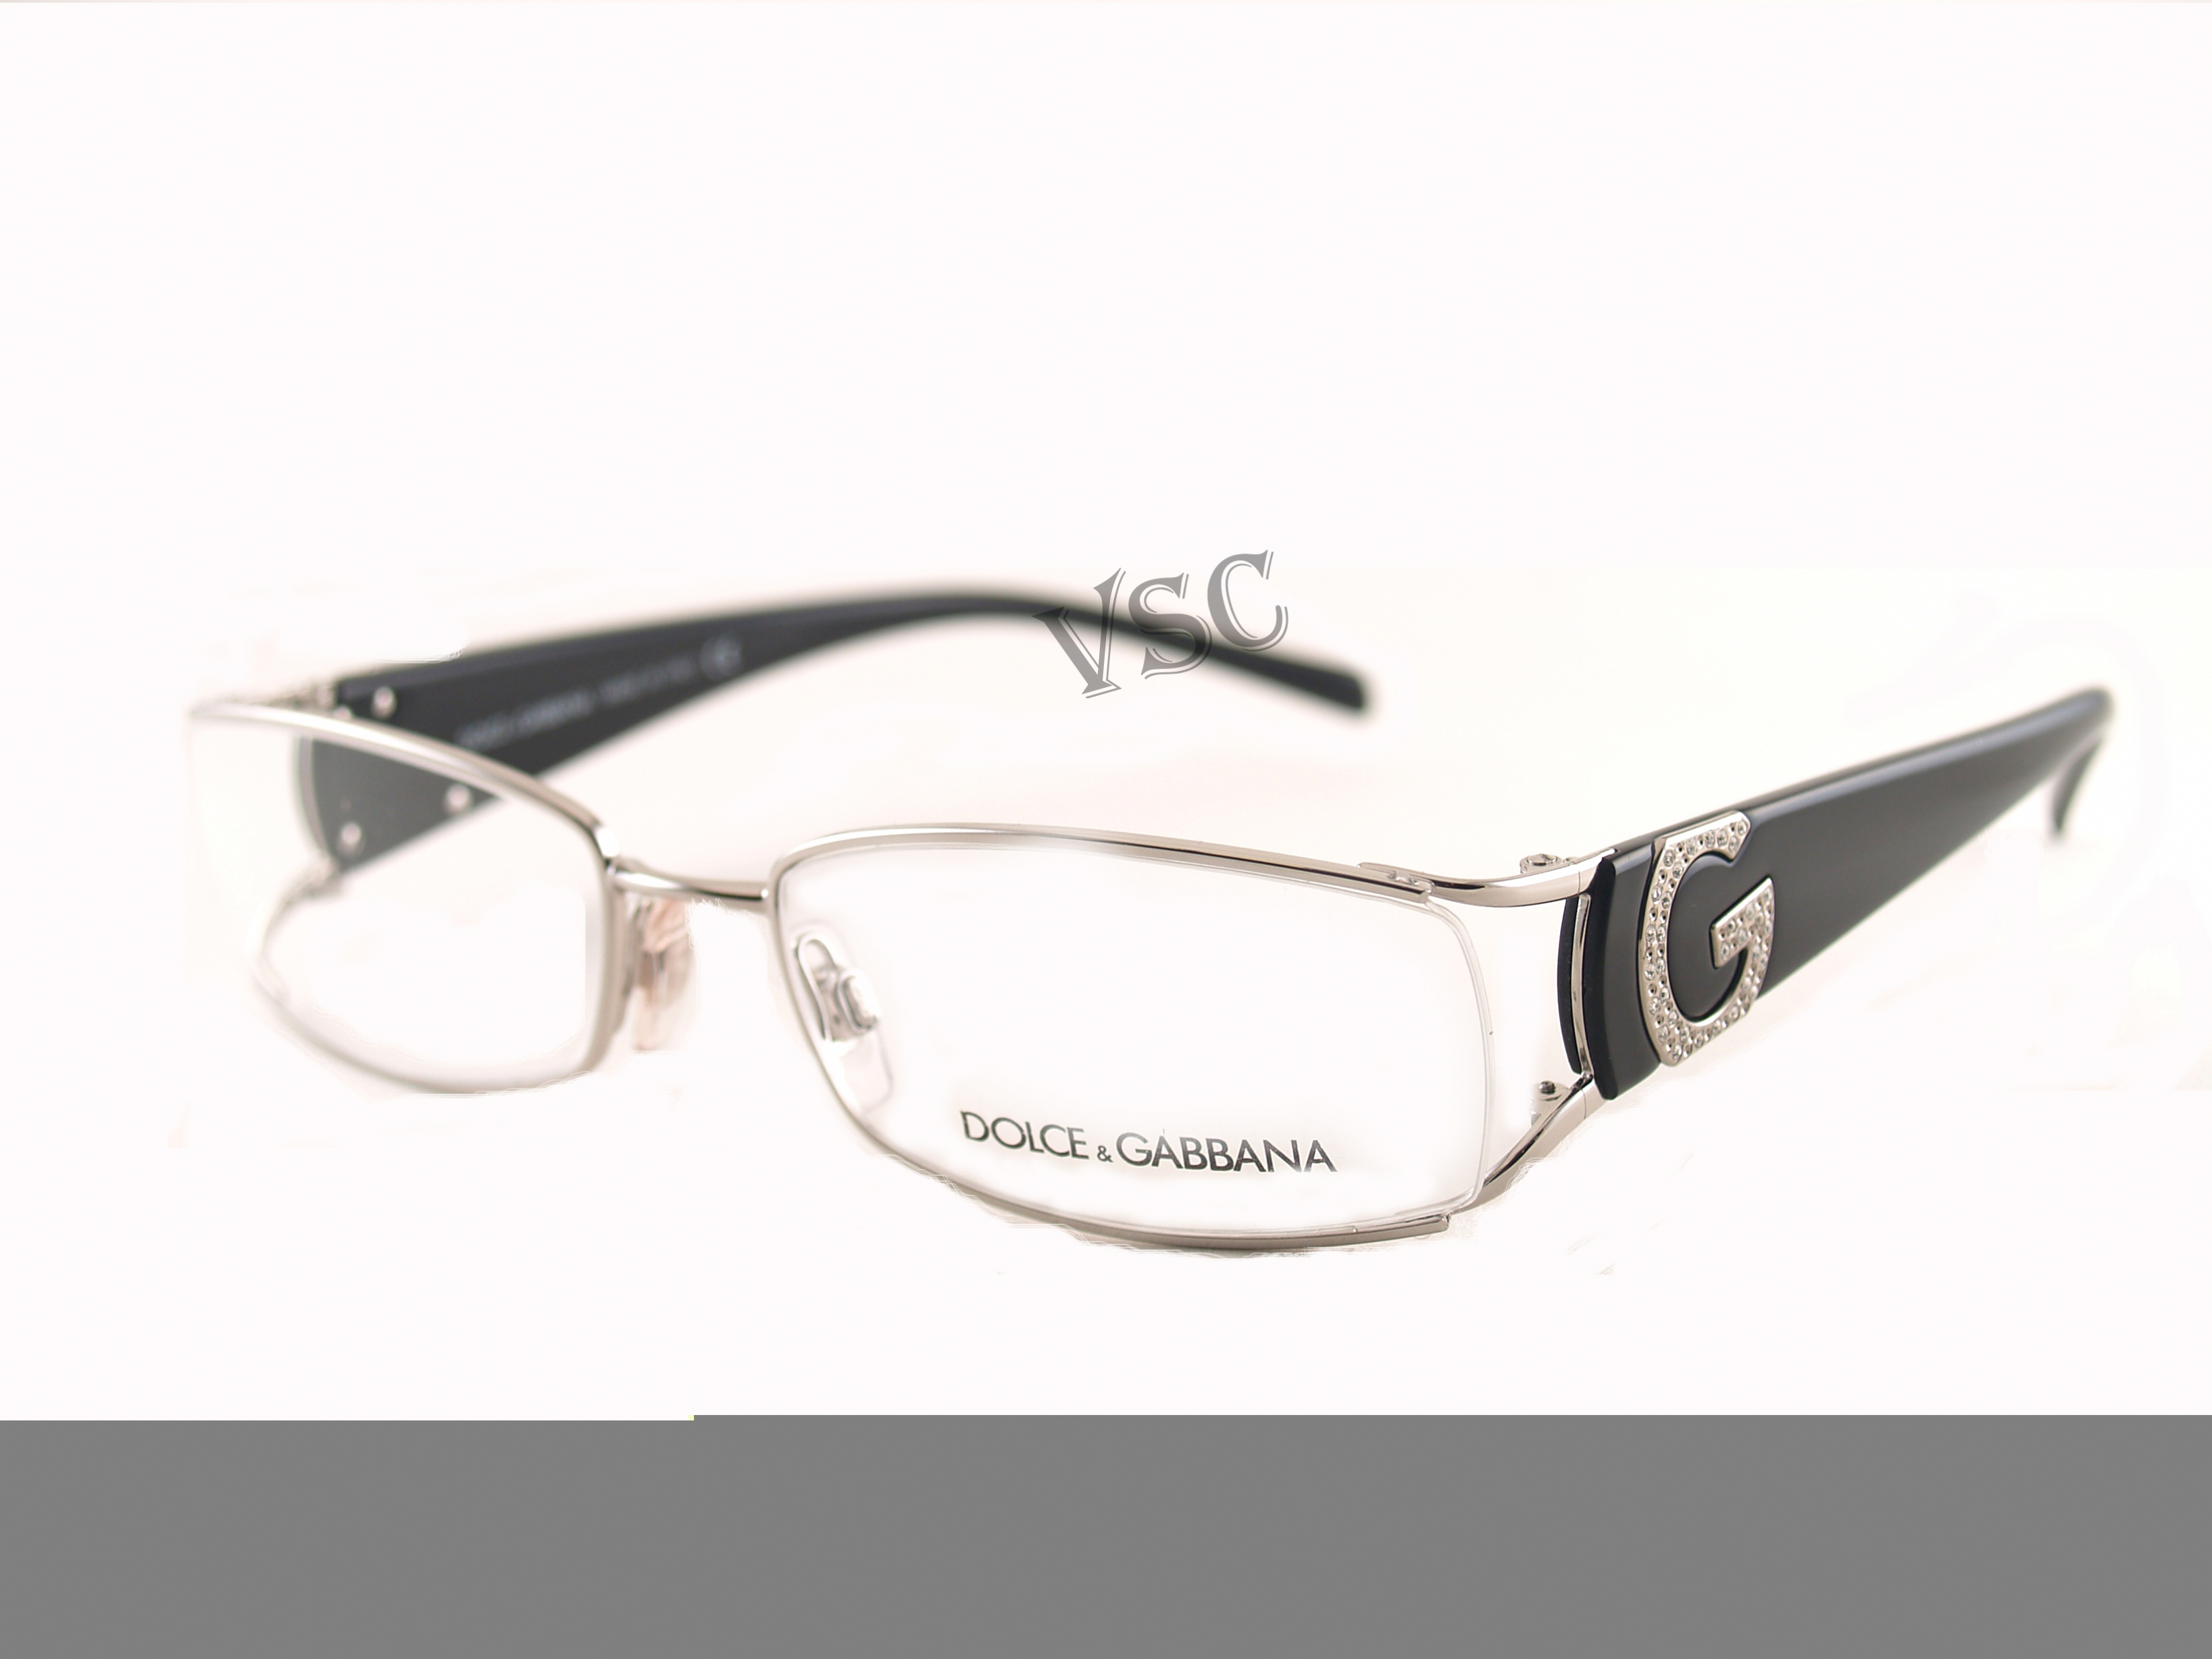 Dolce And Gabbana Metal Glasses Frames